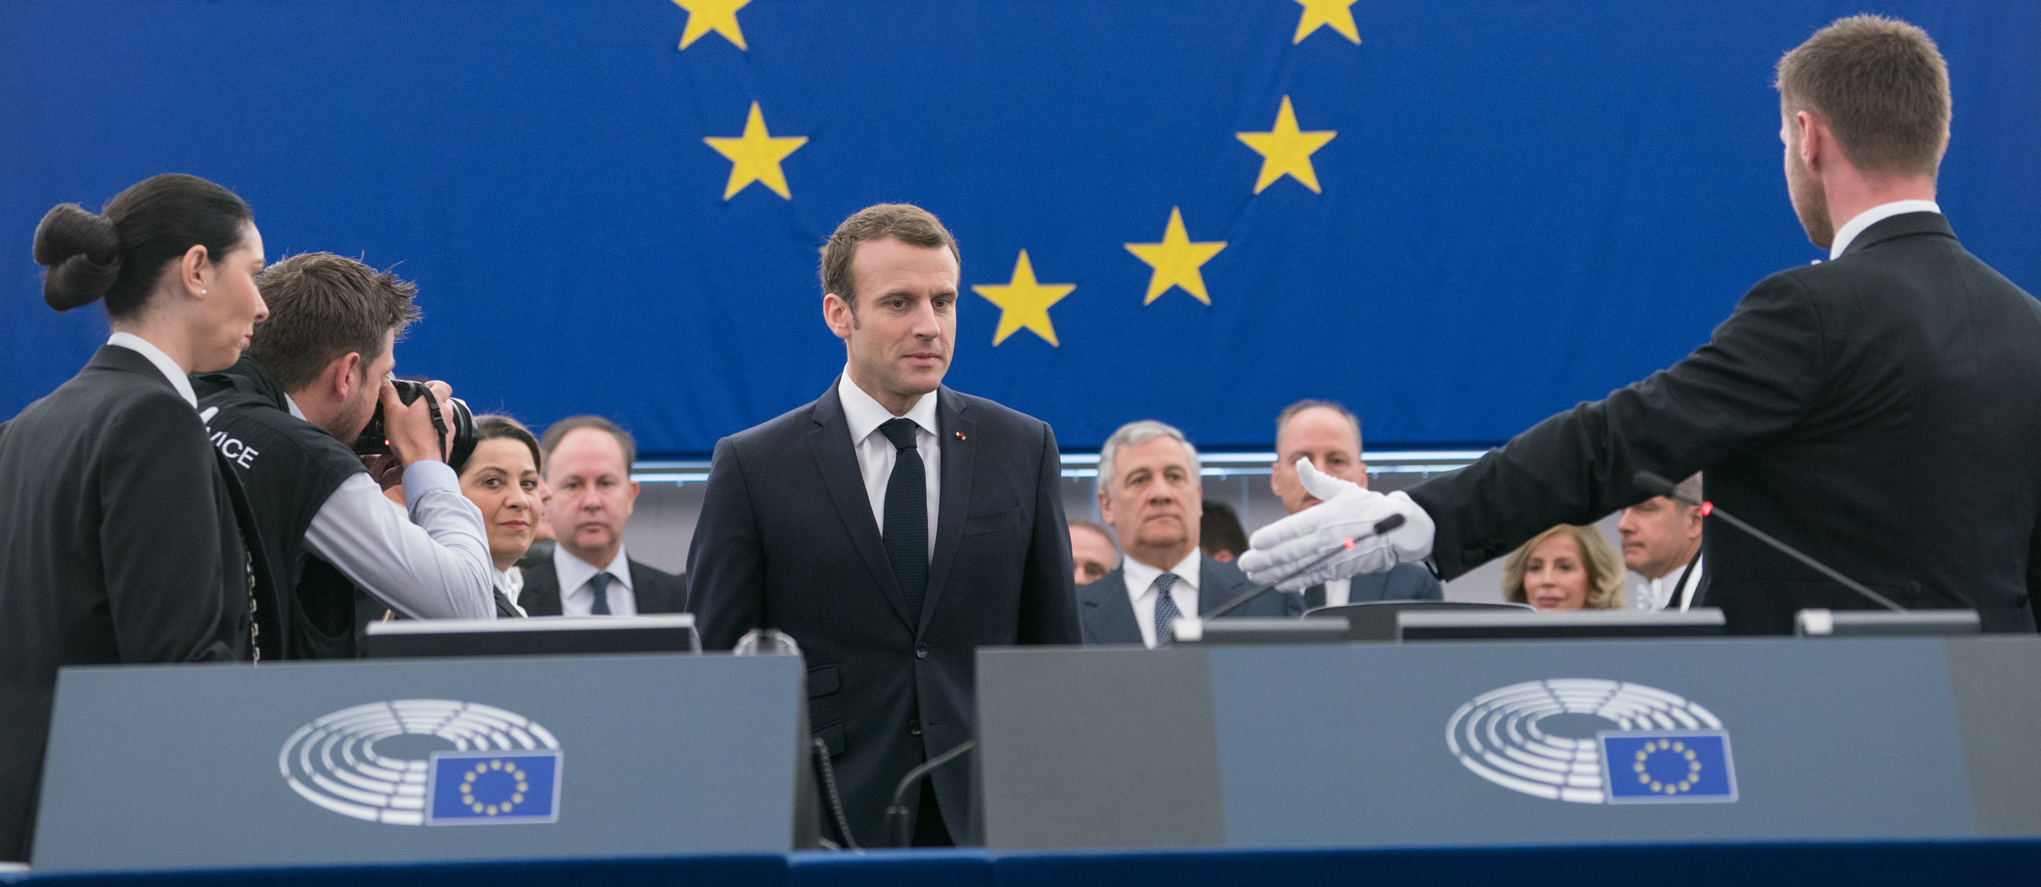 French President Emmanuel Macron debates the future of Europe (Photo: European Parliament/Flickr)